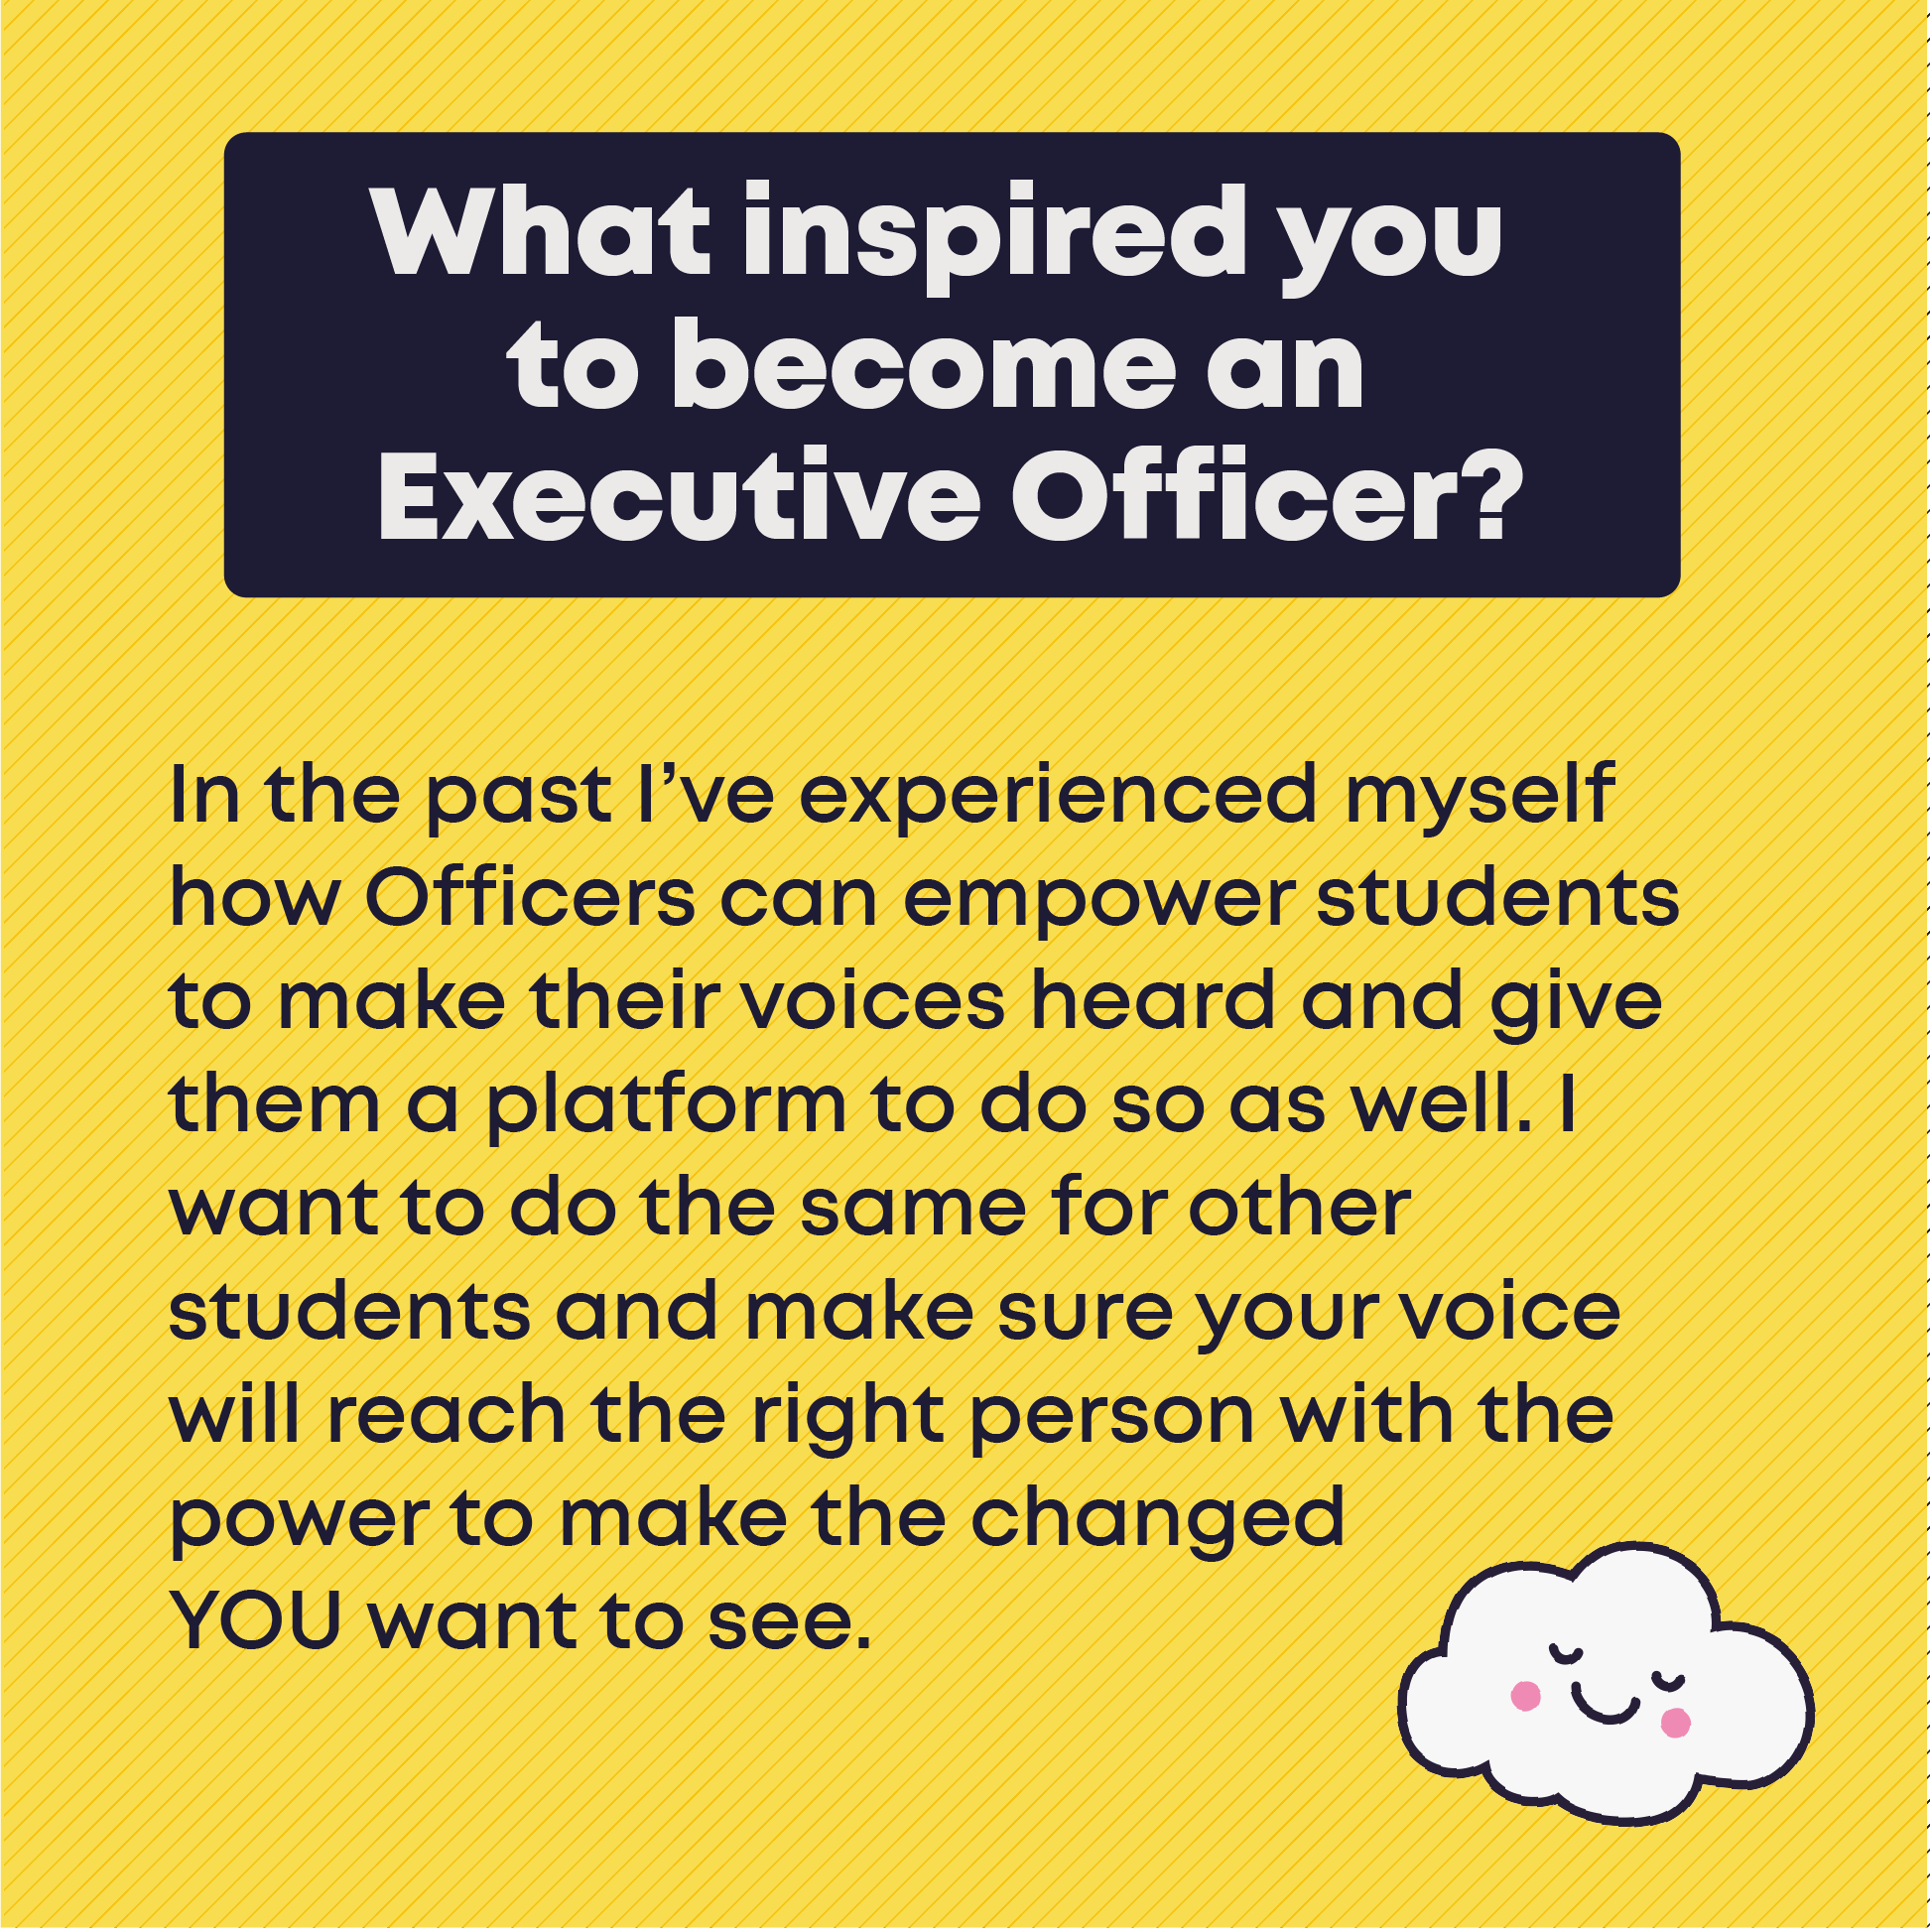 What inspired you to become an Executive Officer?In the past I've experienced myself how Officers can empower students to make their voices heard and give them a platform to do so as well. I want to do the same for other students and make sure your voice will reach the right person with the power to make the changes YOU want to see.